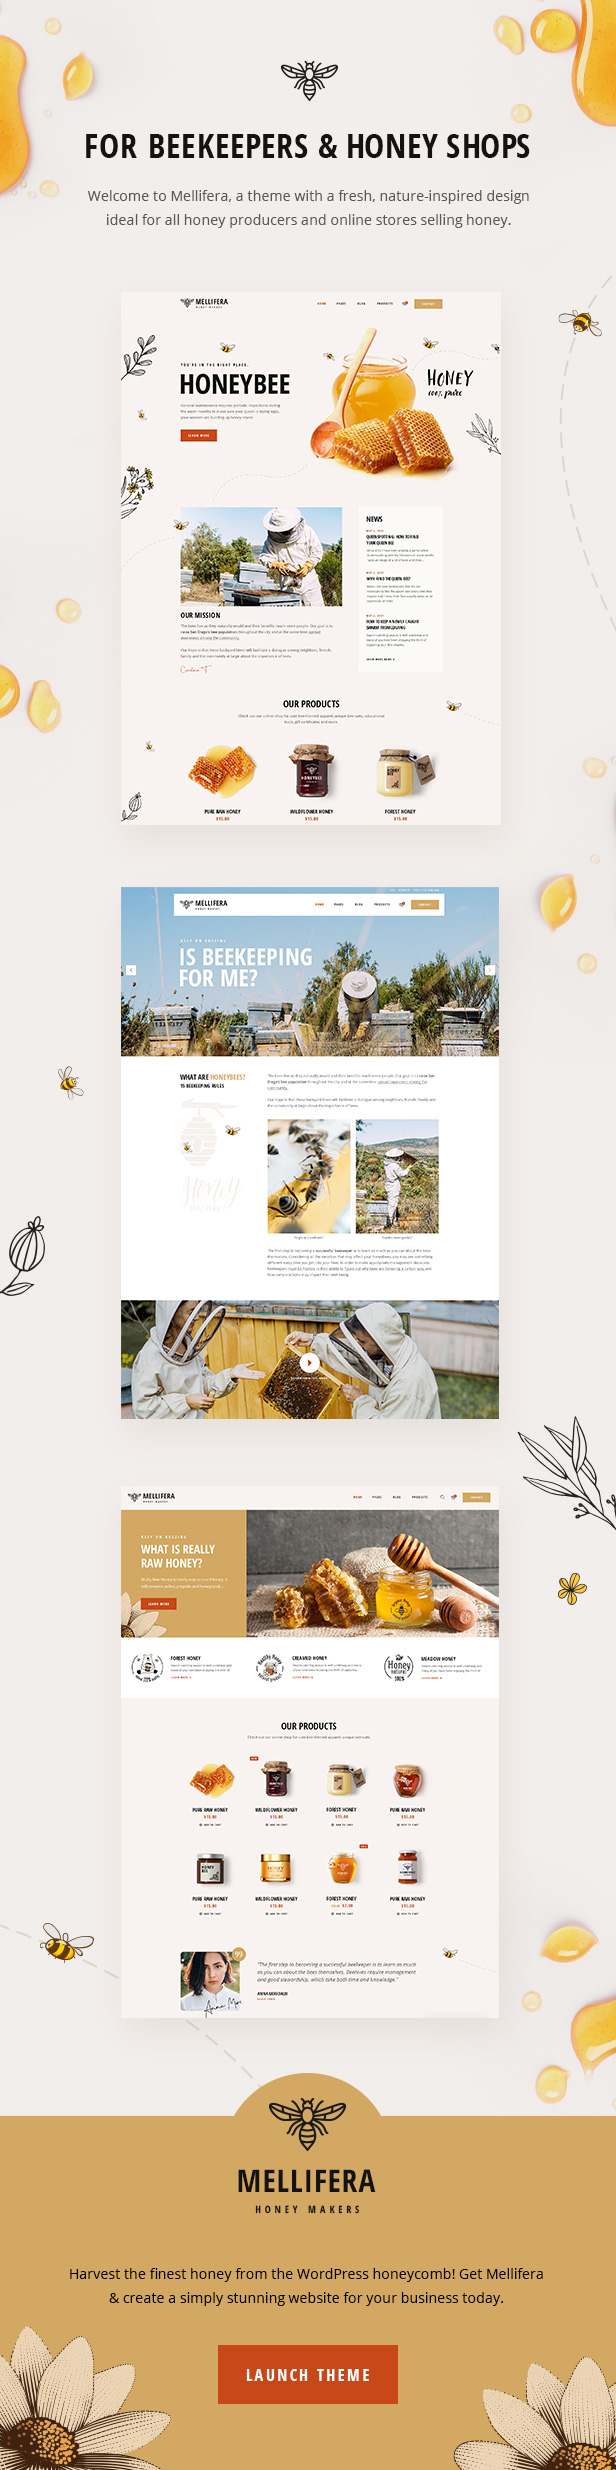 Mellifera - Beekeeping and Honey Shop Theme - 2